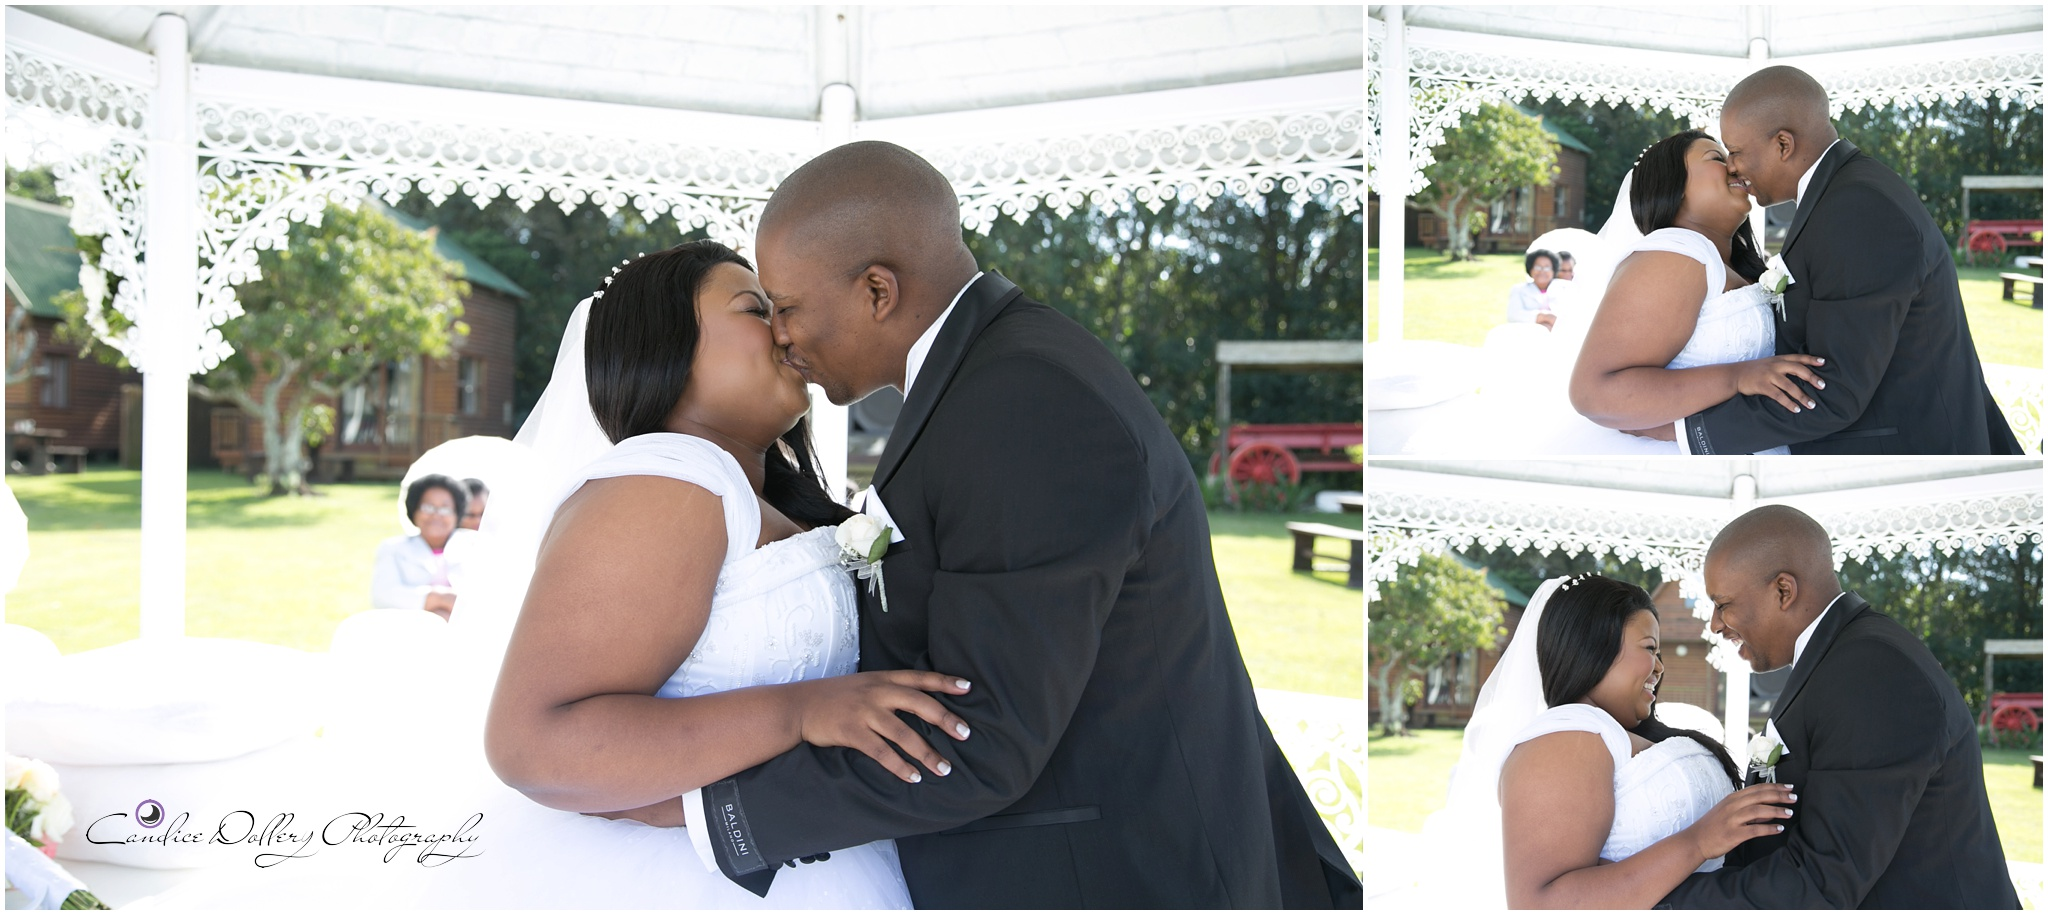 Wedding Gonubie Manor Thola & Phili-Candice Dollery Photograhy_4223